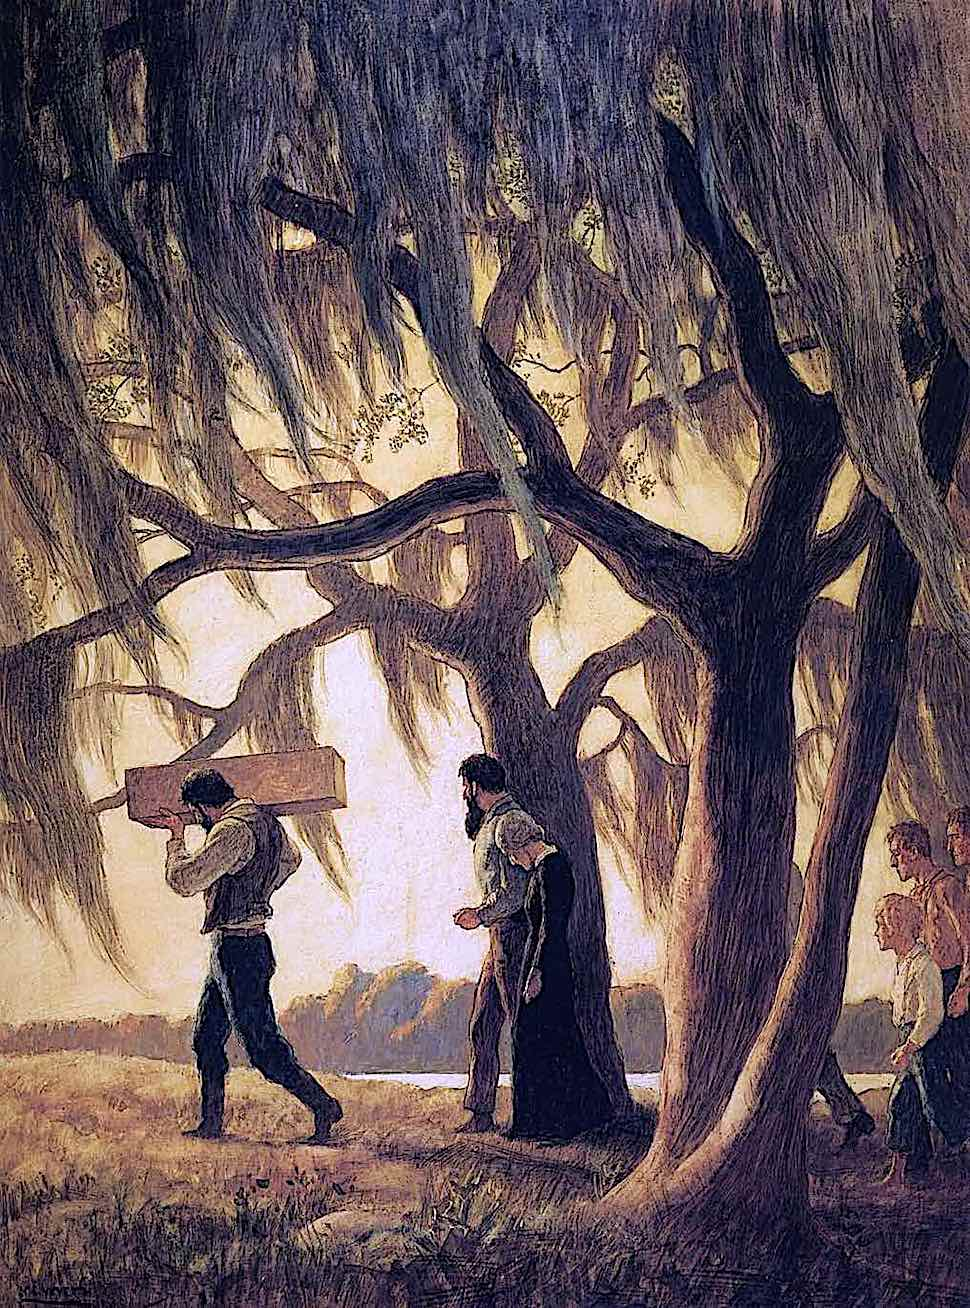 an N.C. Wyeth illustration of a family carrying the casket of a child through mossy trees